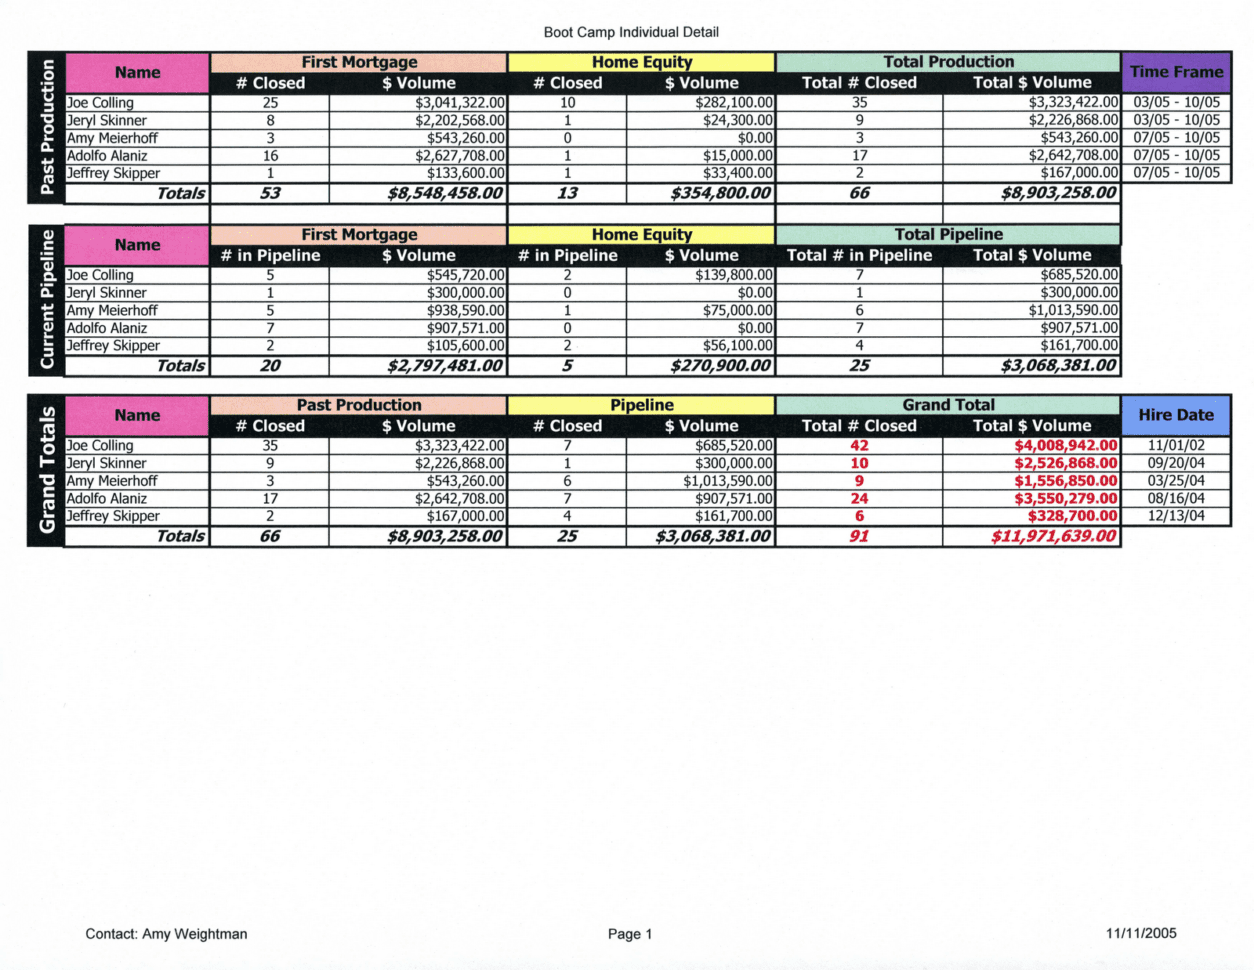 Leave Tracker Excel Template